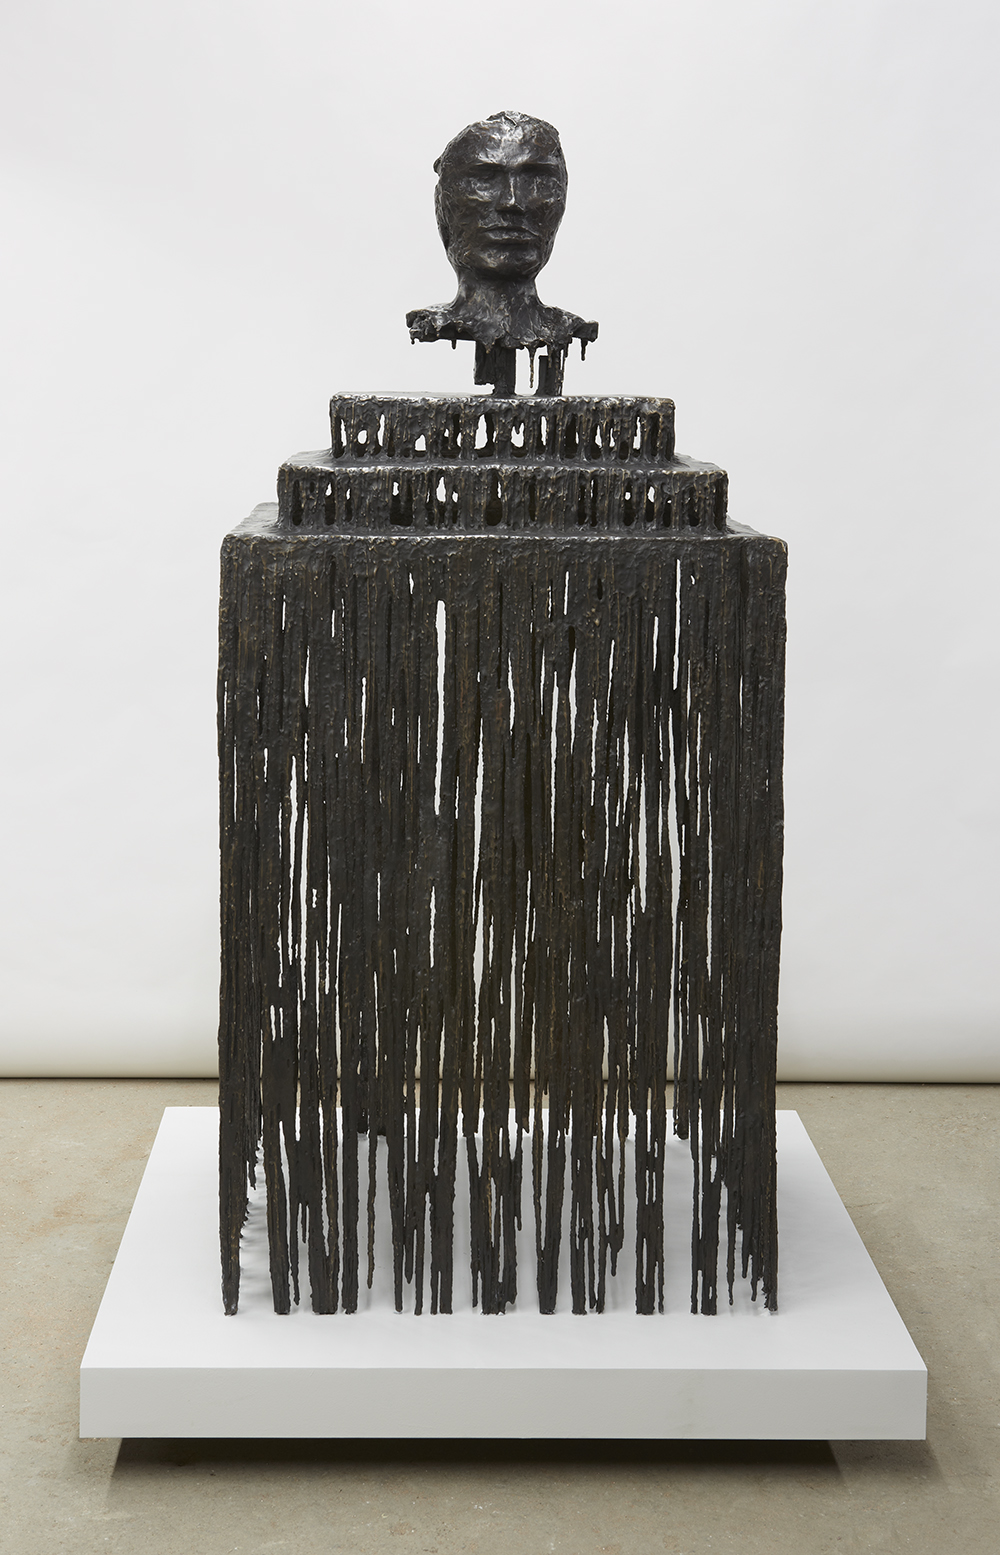 Blind Bust III, 2012   Bronze, painted stainless steel   76 x 34 x 48 inches     193 x 86.4 x 121.9 cm   Photo Credit: Jason Wyche